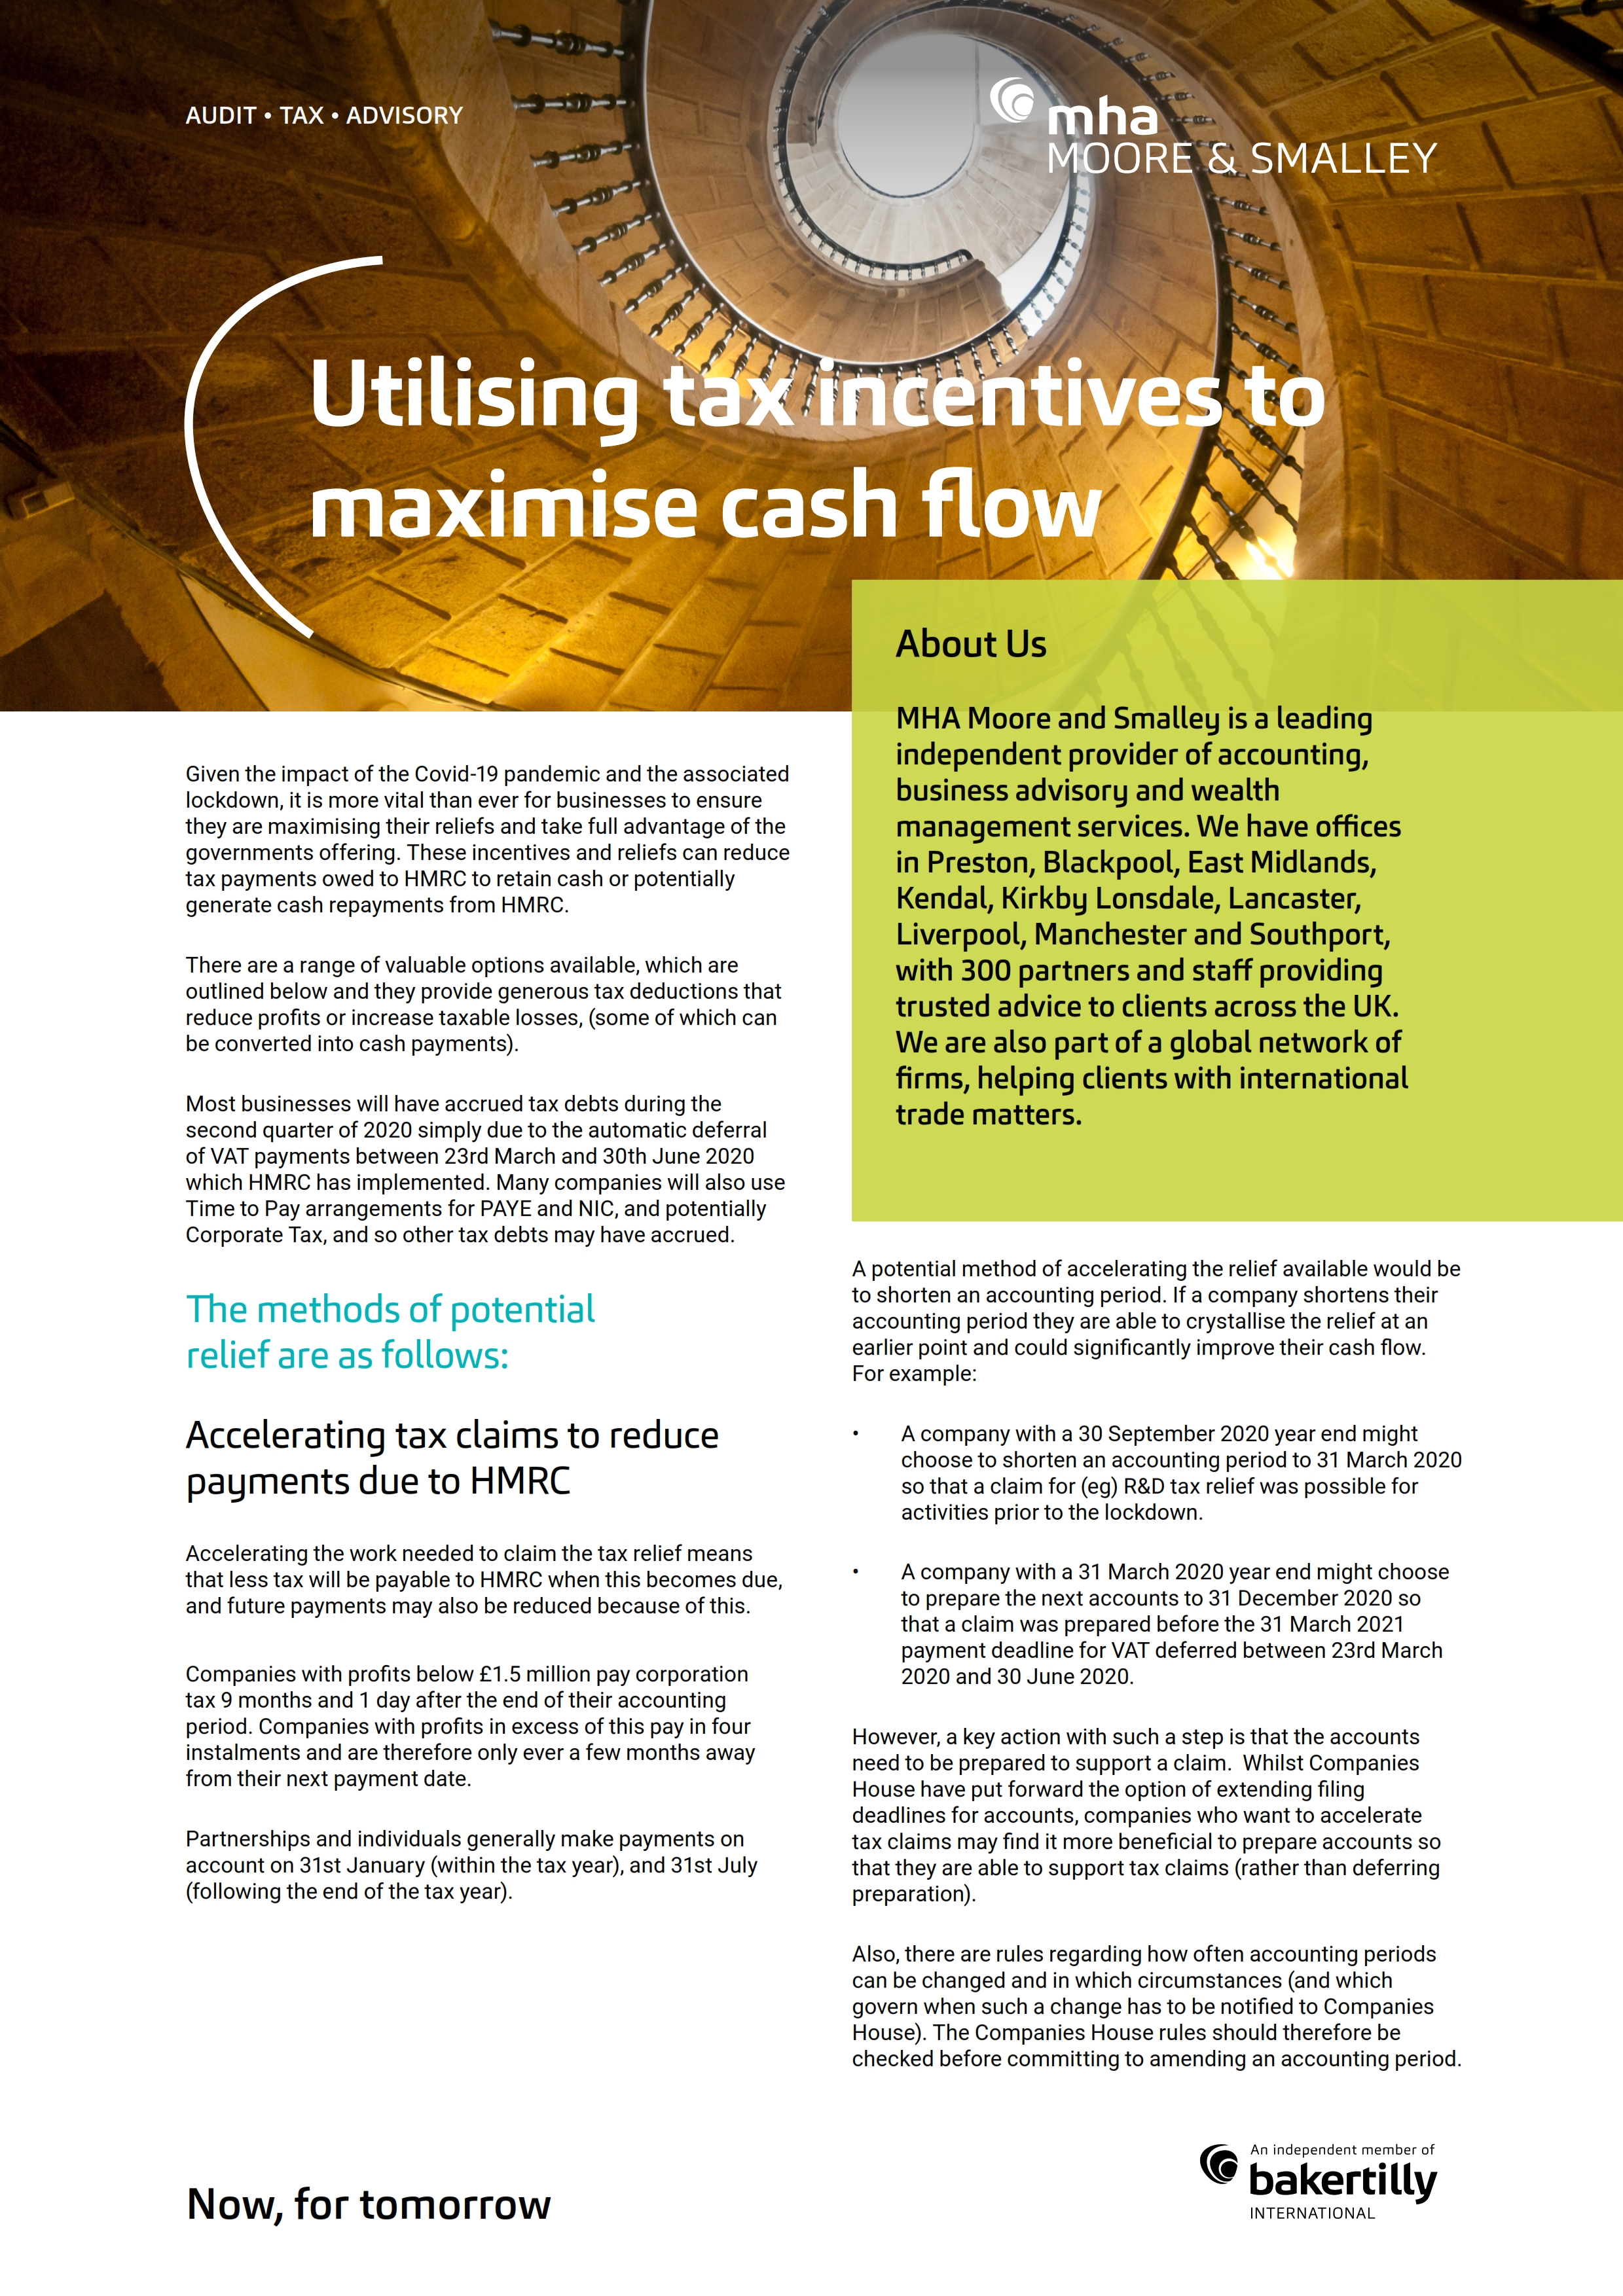 Utilising tax incentives to maximise cash flow